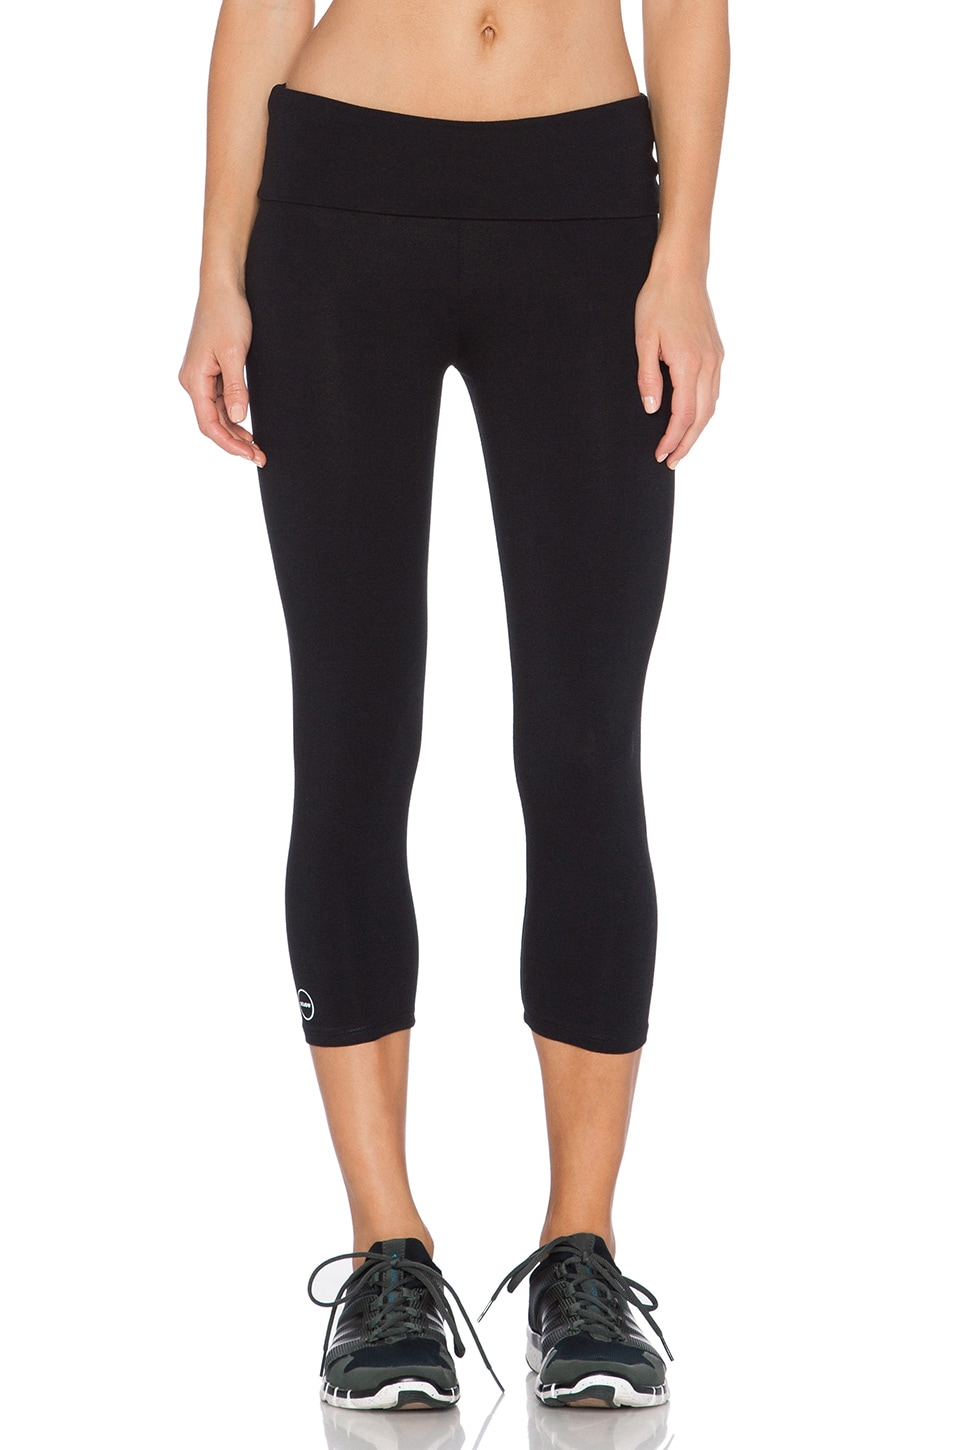 SOLOW Fold Over Crop Legging in Black